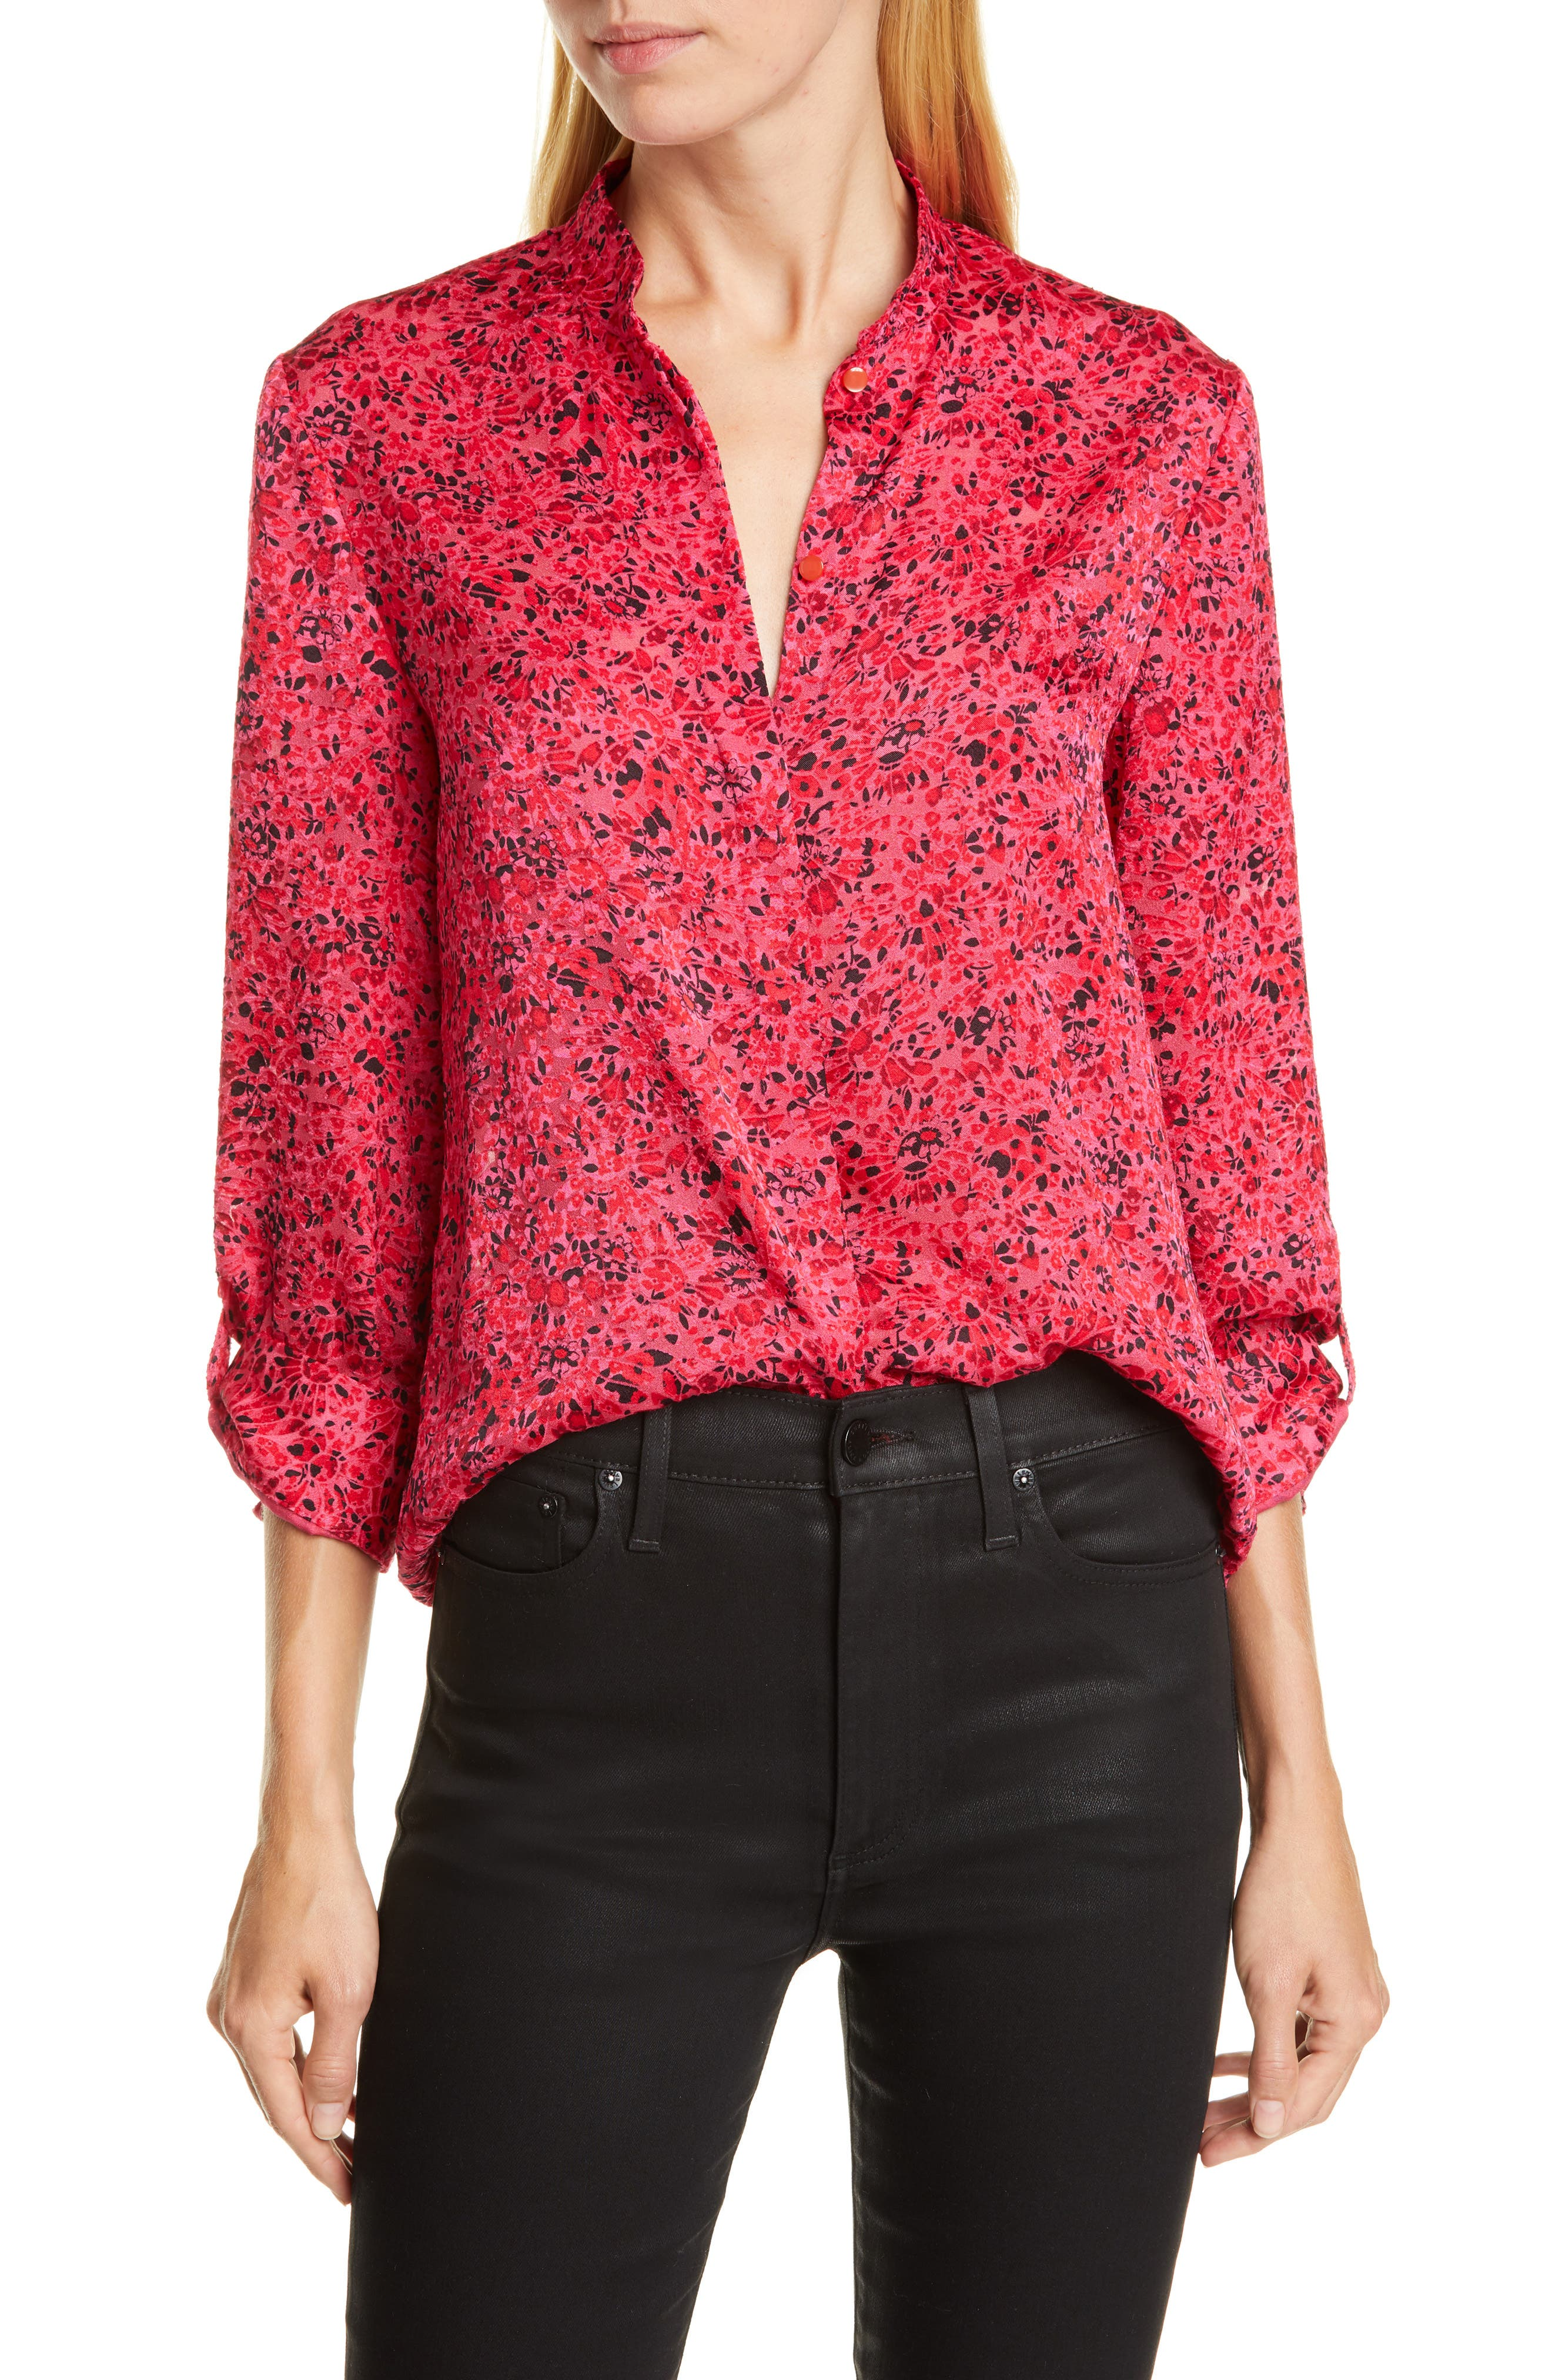 Alice + Olivia Tops Eloise Floral Top